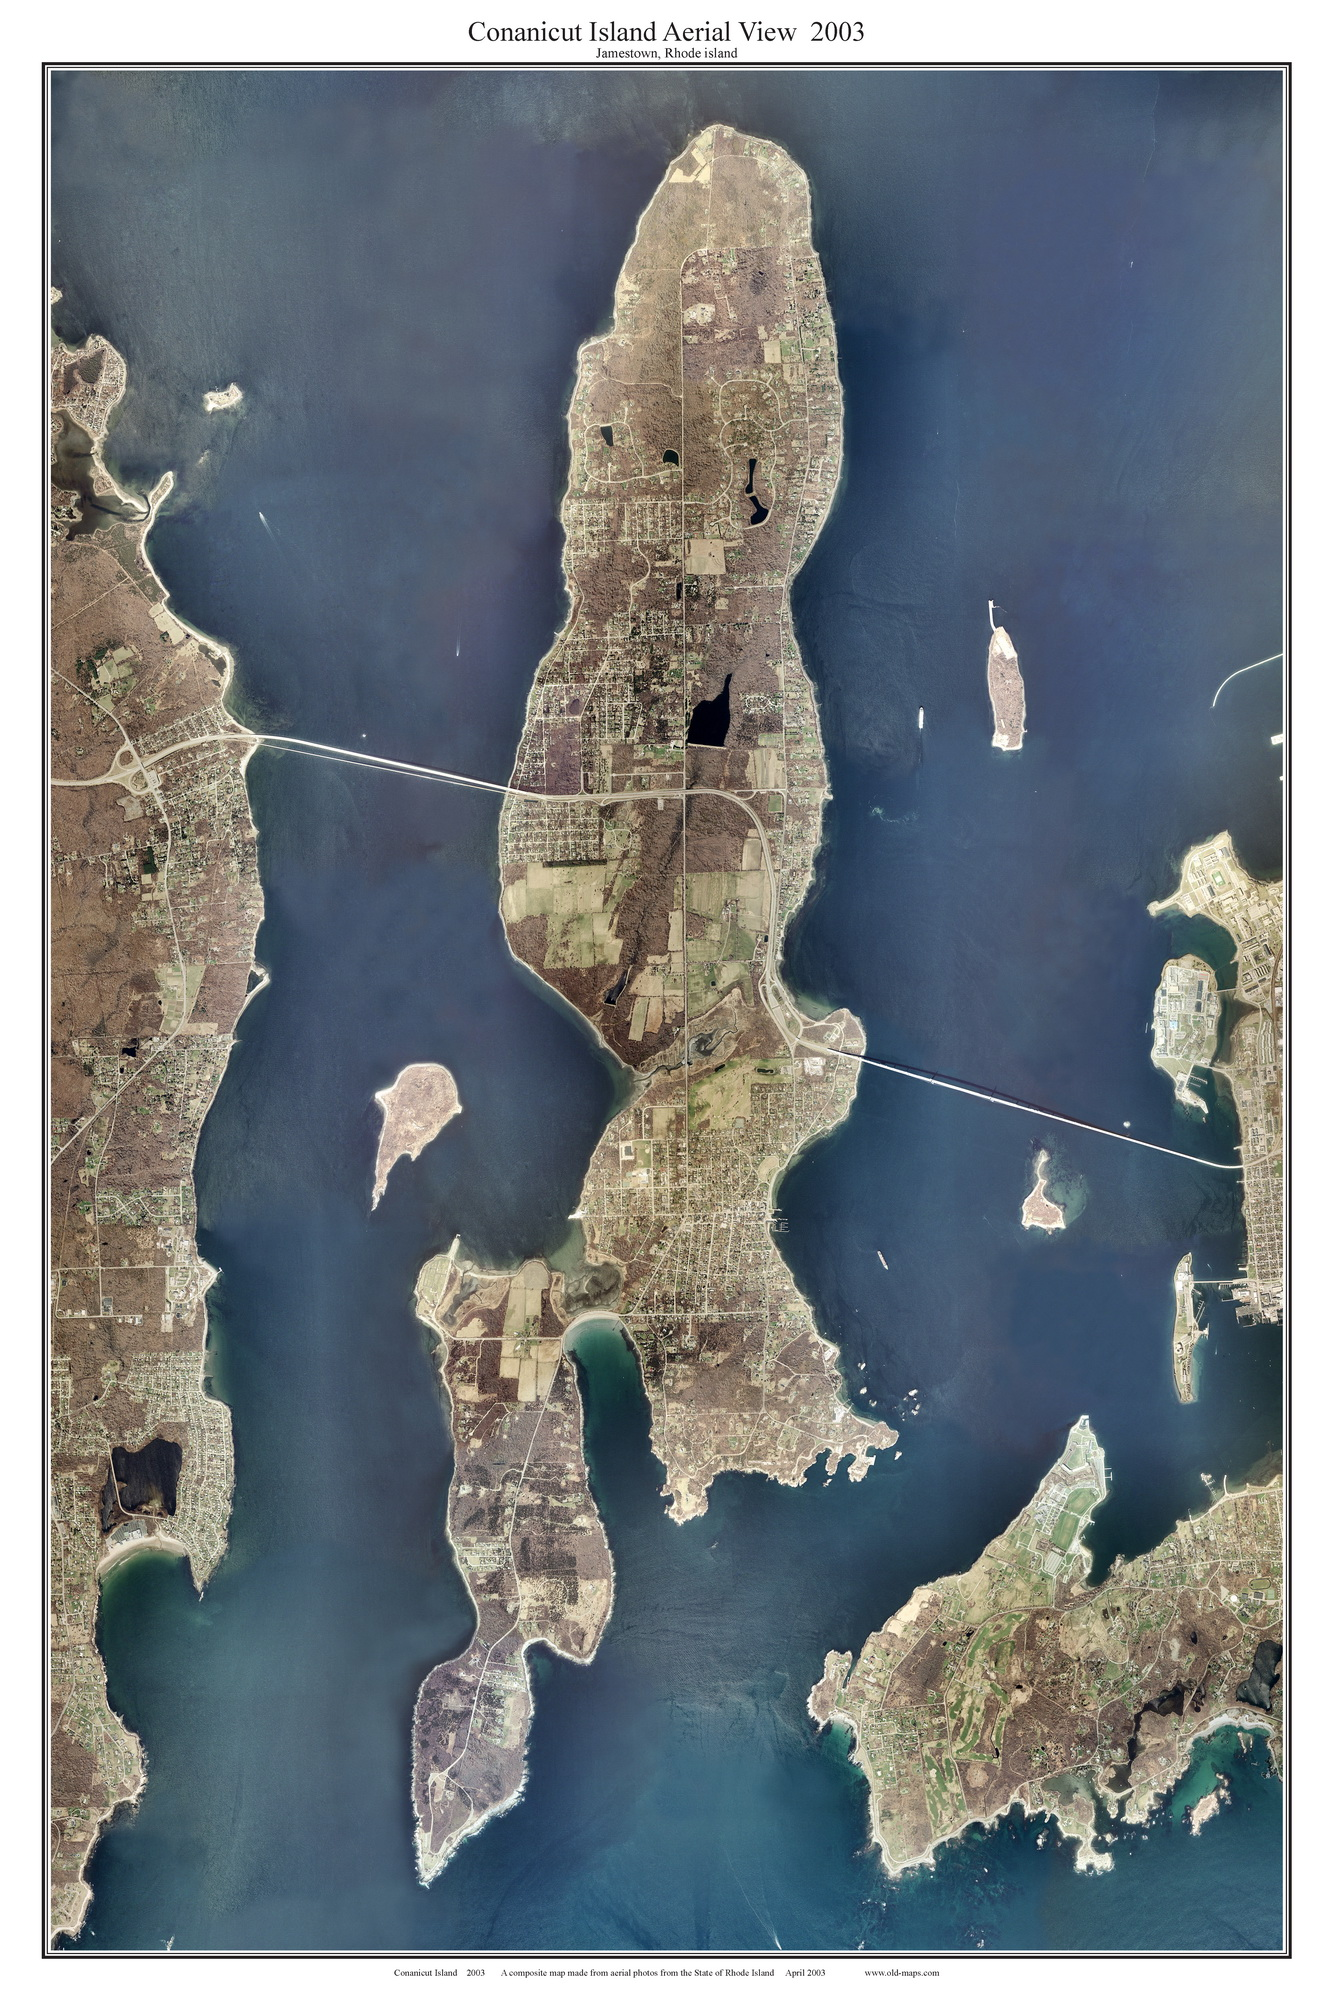 Old Maps of Rhode Island   National Archives Conanicut Island Aerial View 2003  Jamestown 11  x 17     12 16  x 24      20 24  x 36     30